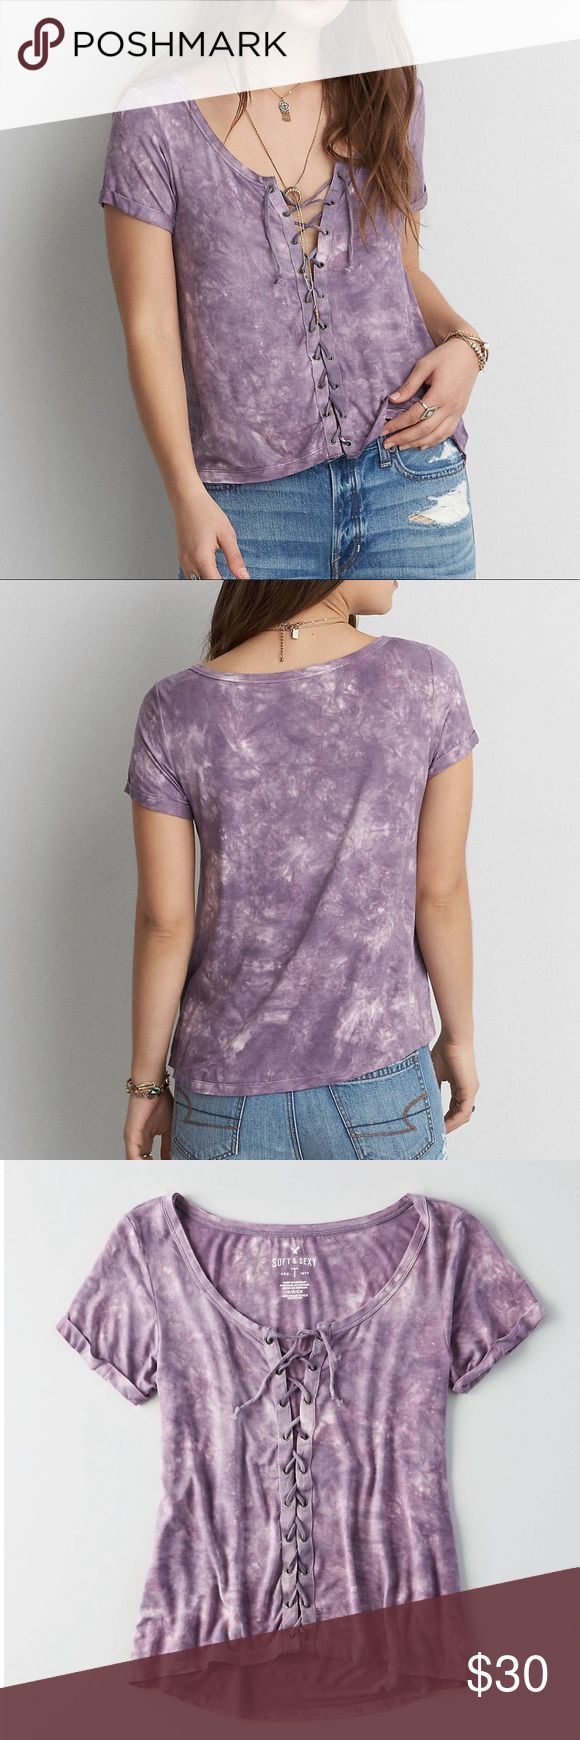 SUMMER COLLECTION/ lace up top Worn only once! Purple tie dye lace up top! Perfect to pair with high waisted jeans or shorts! The shirt is super soft as well! Perfect condition! Price is currently firm! ☺️ American Eagle Outfitters Tops